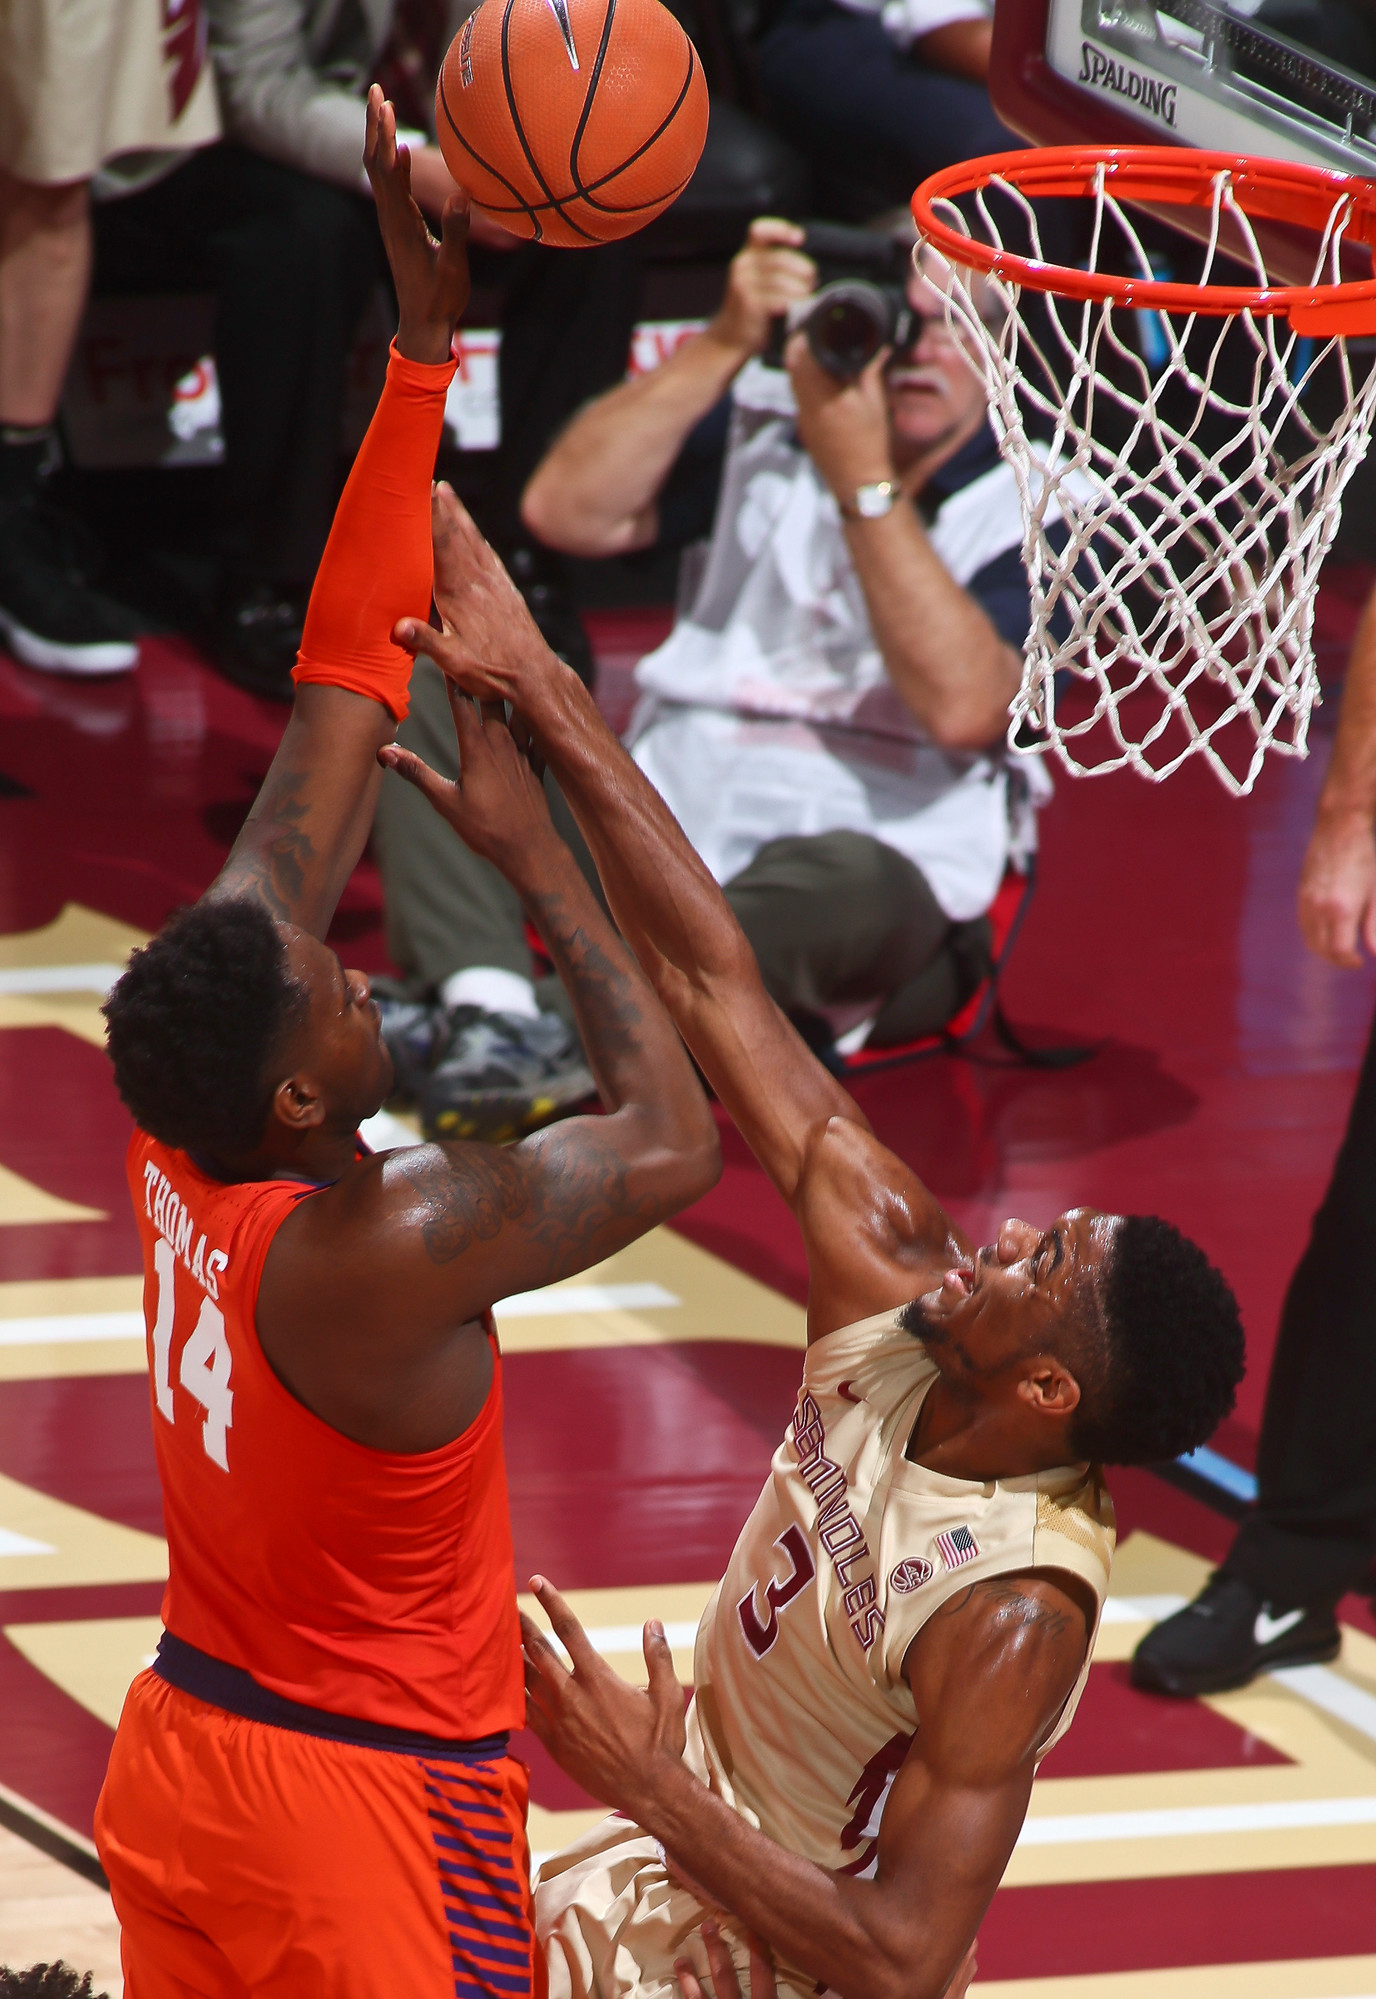 Clemson forward Elijah Thomas (14) makes a layup as he is fouled by Florida State guard Trent Forrest (3) during the Tigers' 81-79 loss on Wednesday in Tallahassee, Fla.